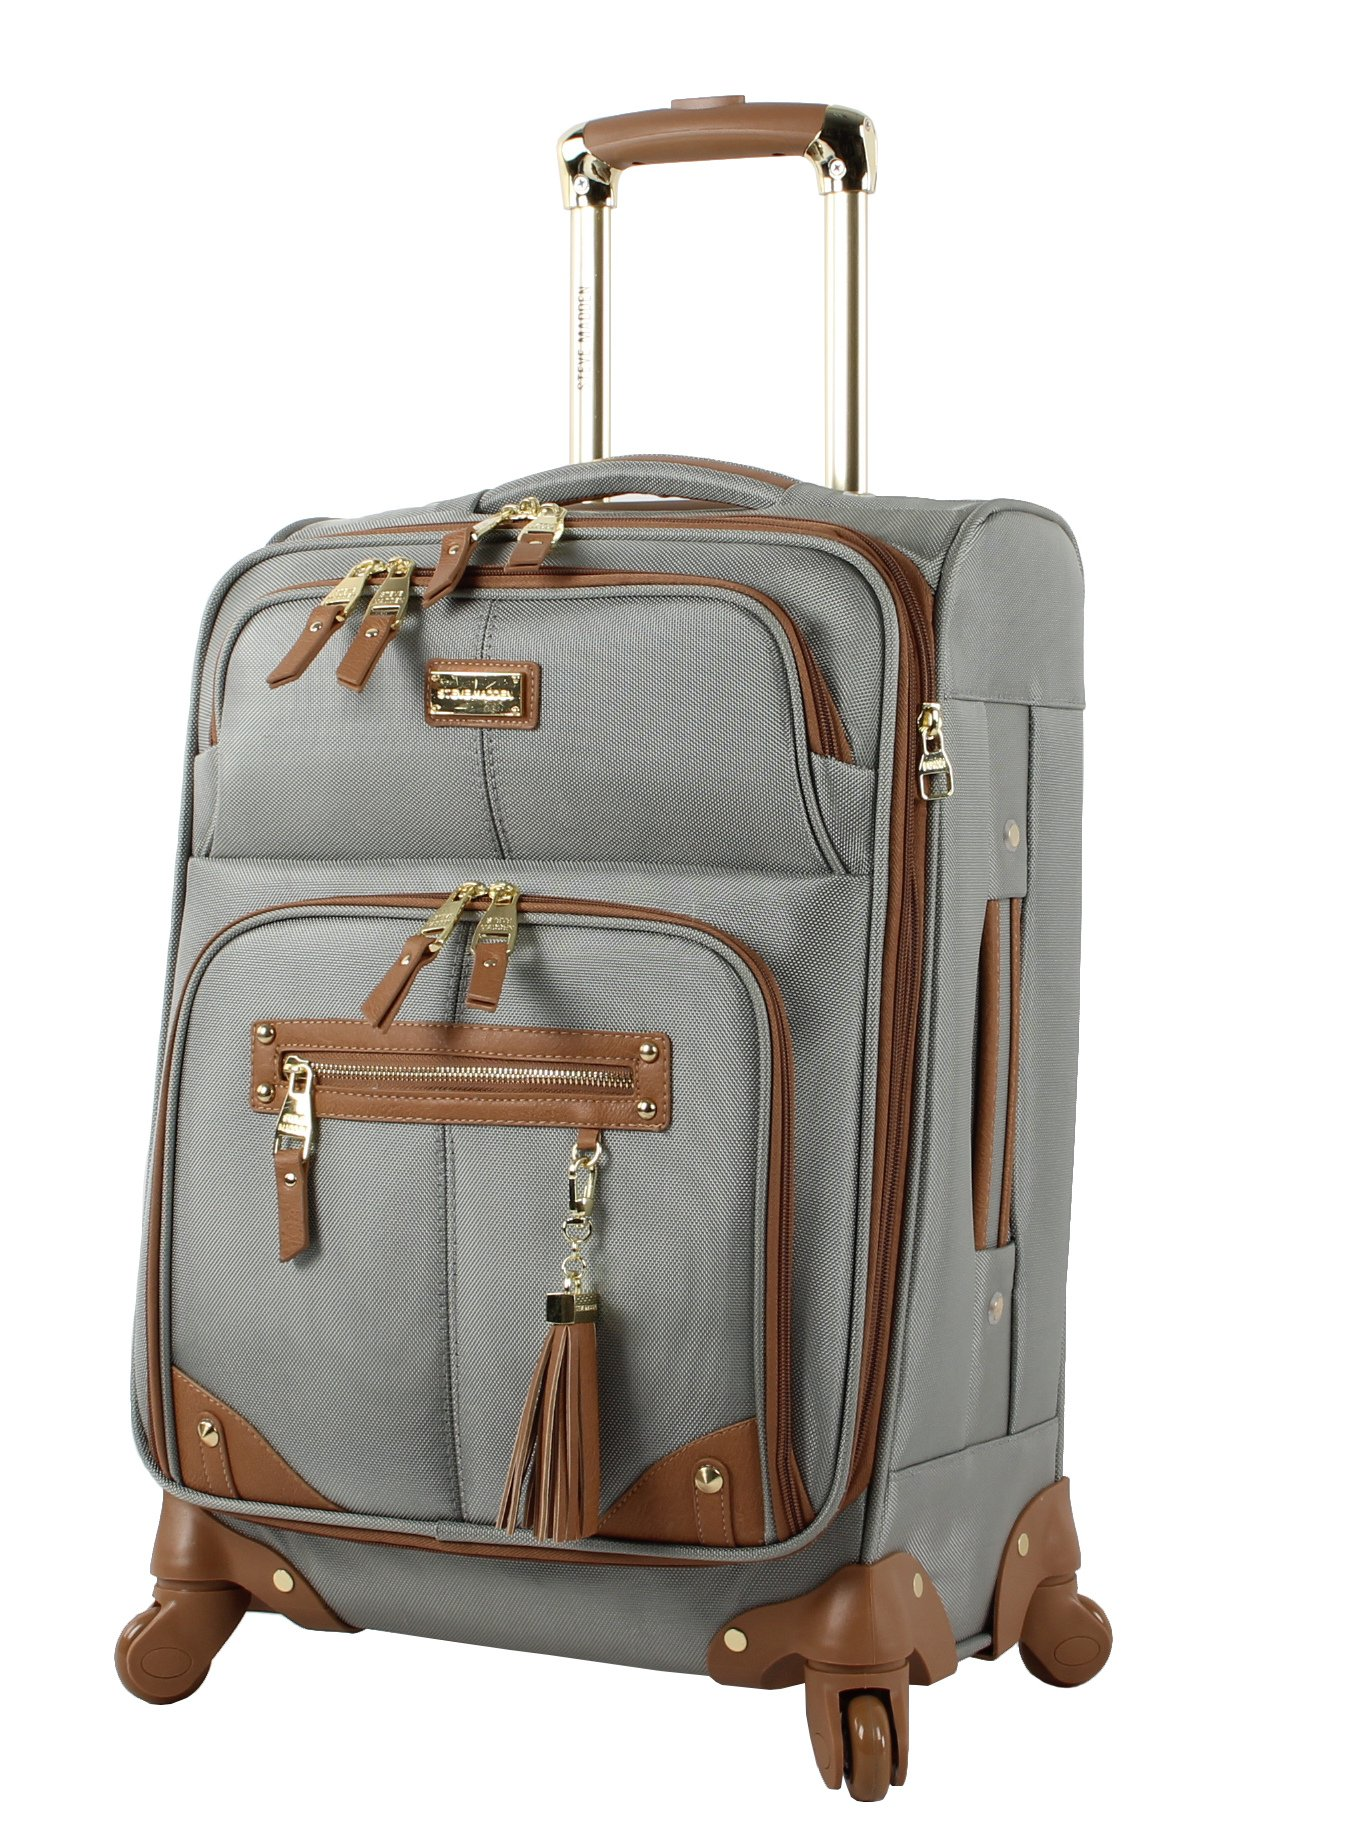 Steve Madden Luggage Carry On 20'' Expandable Softside Suitcase With Spinner Wheels (20in, Harlo Gray)